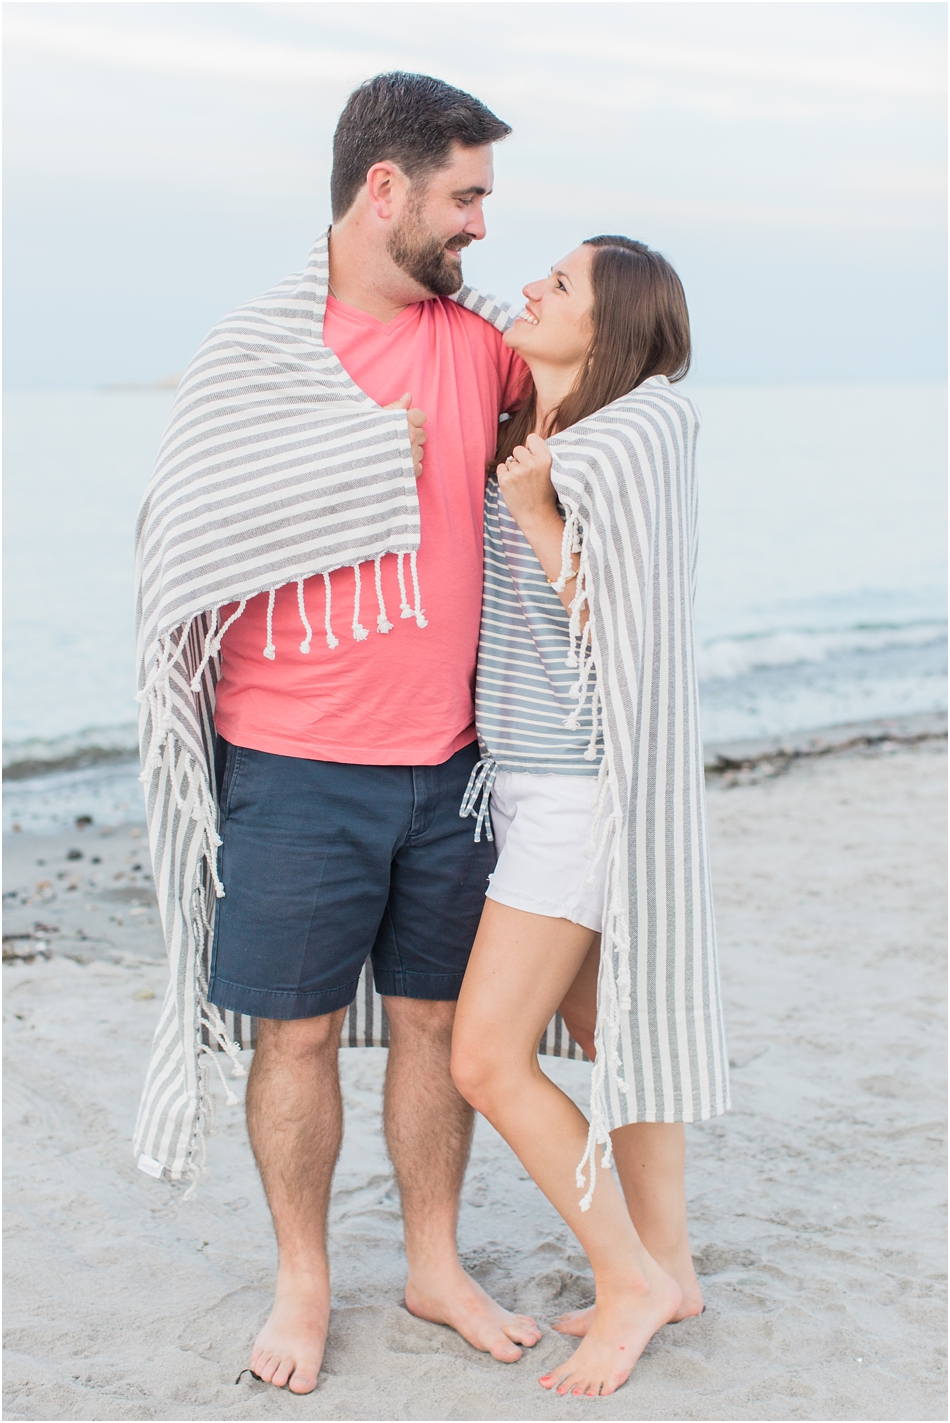 cohasset_beach_harbor_engagement_massachusetts_cape_cod_new_england_wedding_photographer_Meredith_Jane_Photography_photo_2146.jpg